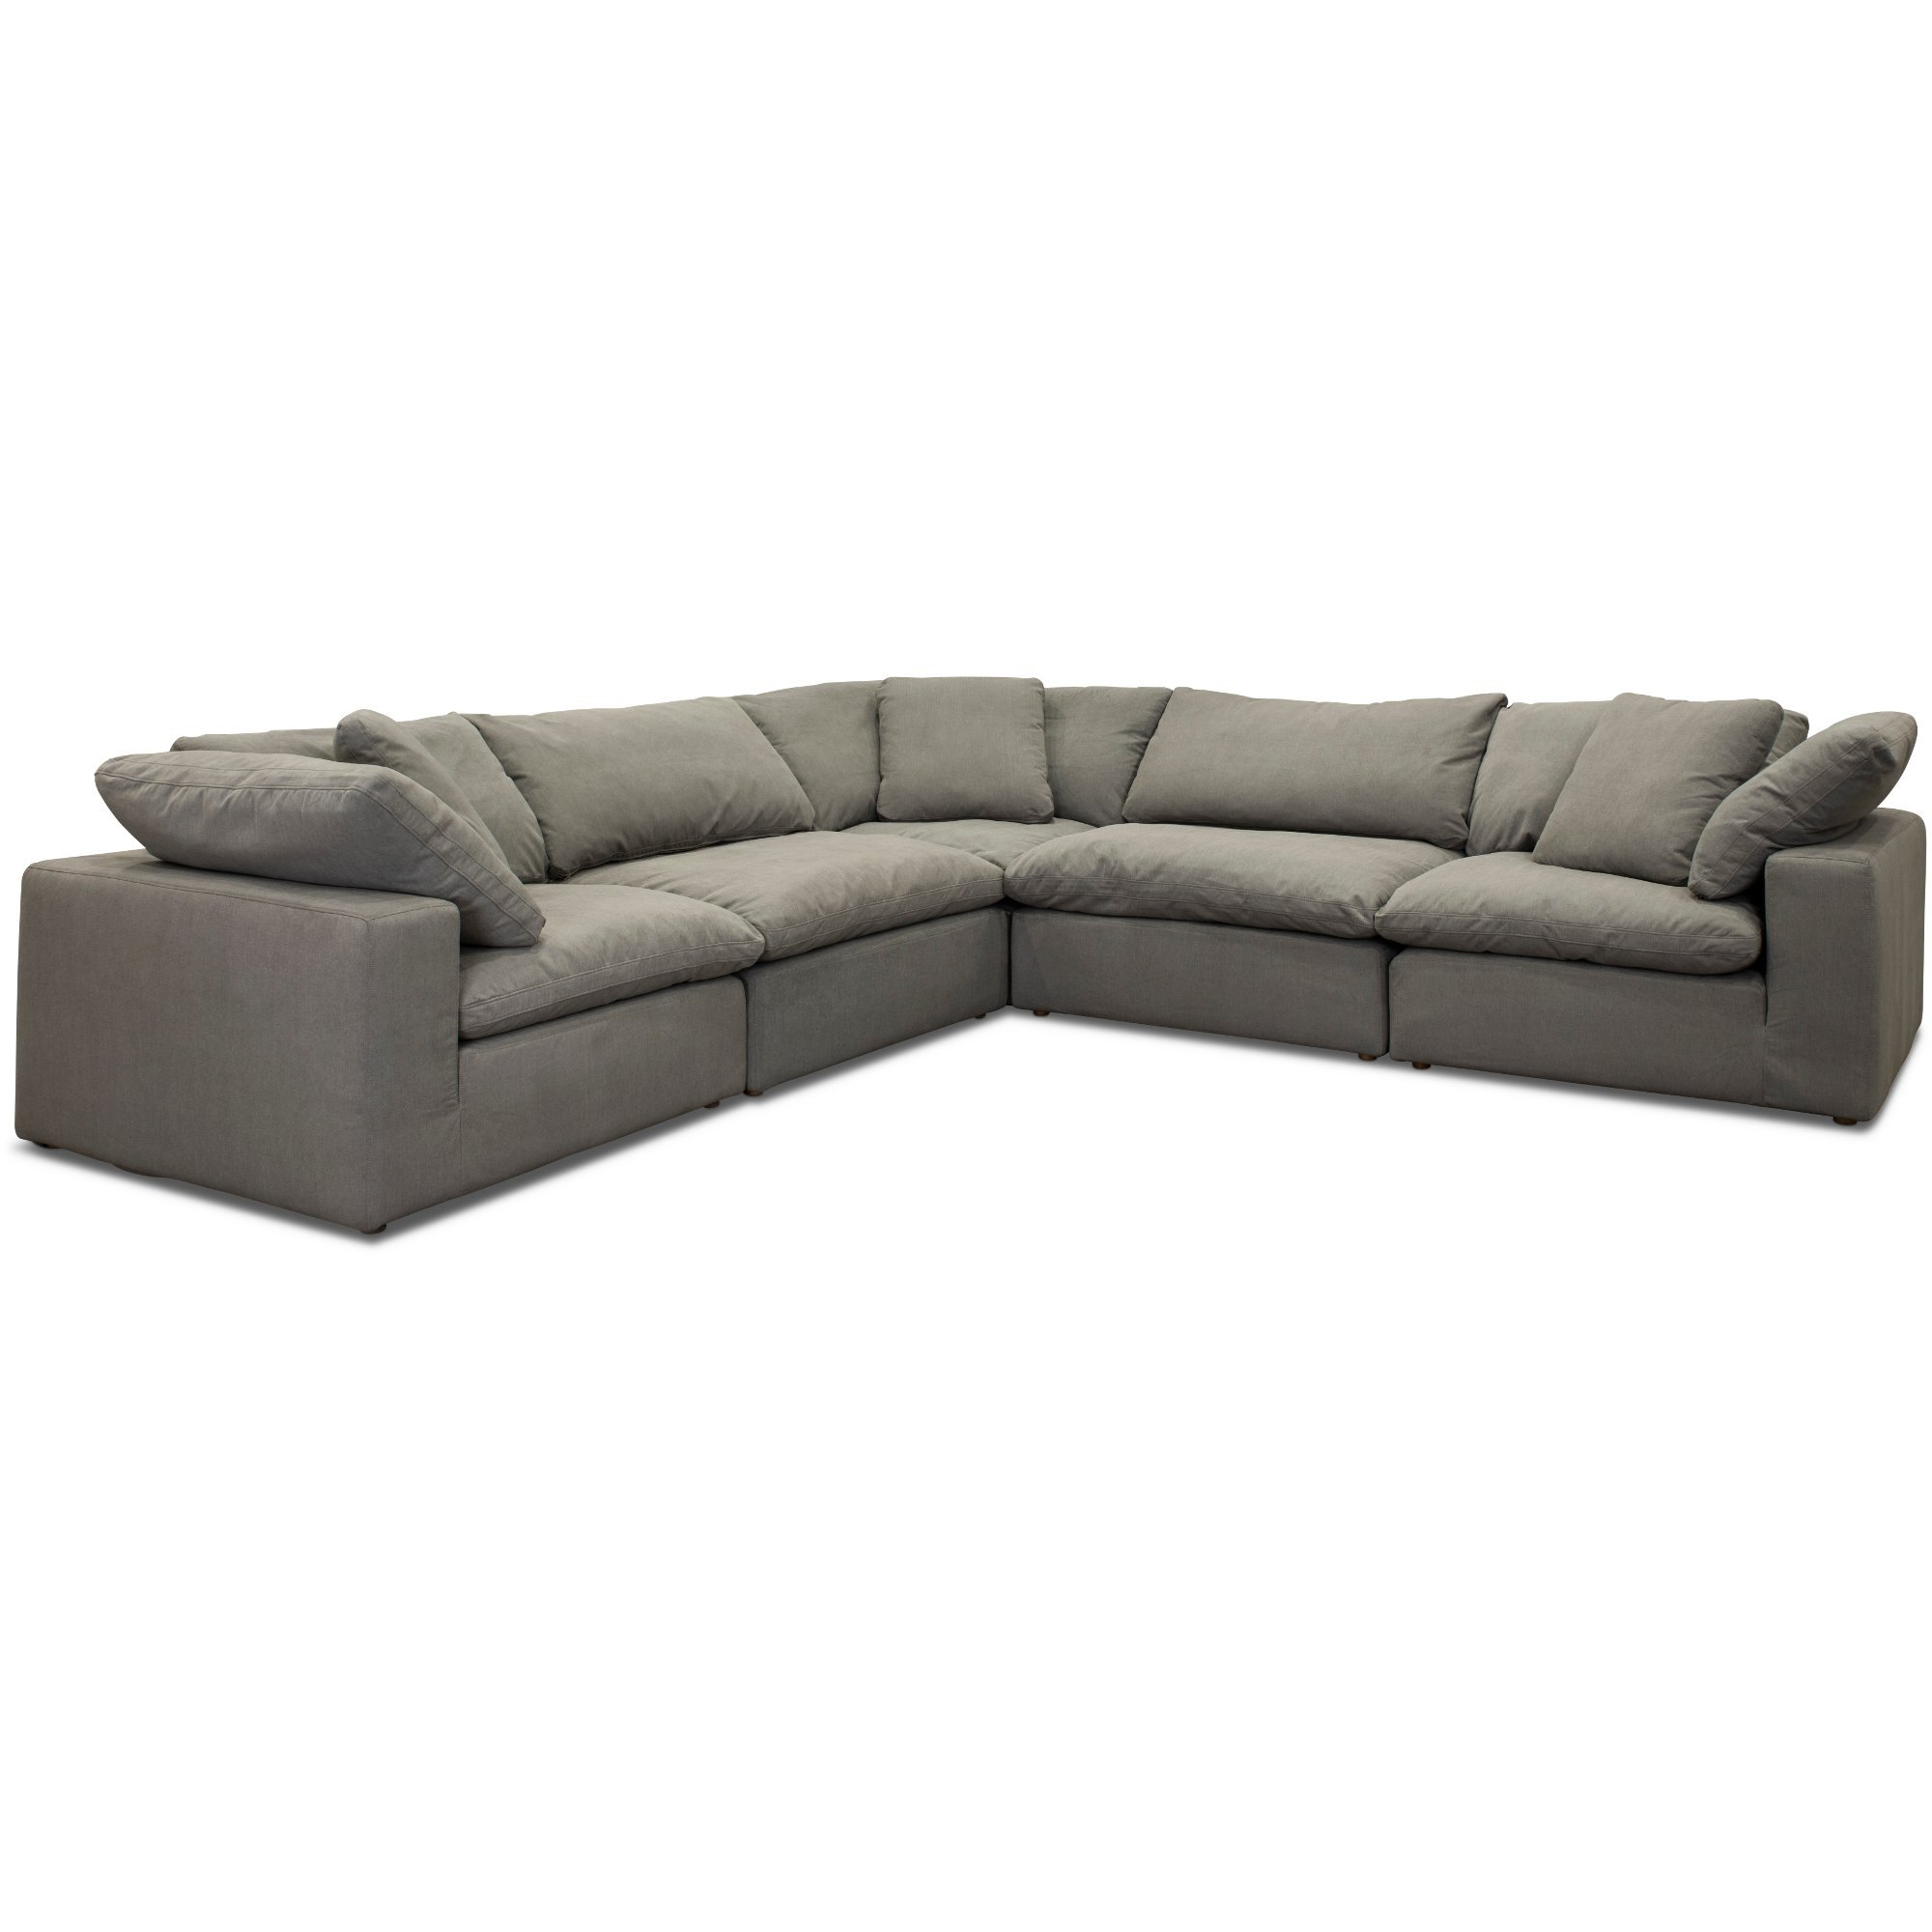 Popular Denali Light Grey 6 Piece Reclining Sectionals With 2 Power Headrests With Regard To Perfect Product Image Gennaro Pc Lear Sectional Lear Living Rooms (View 18 of 20)